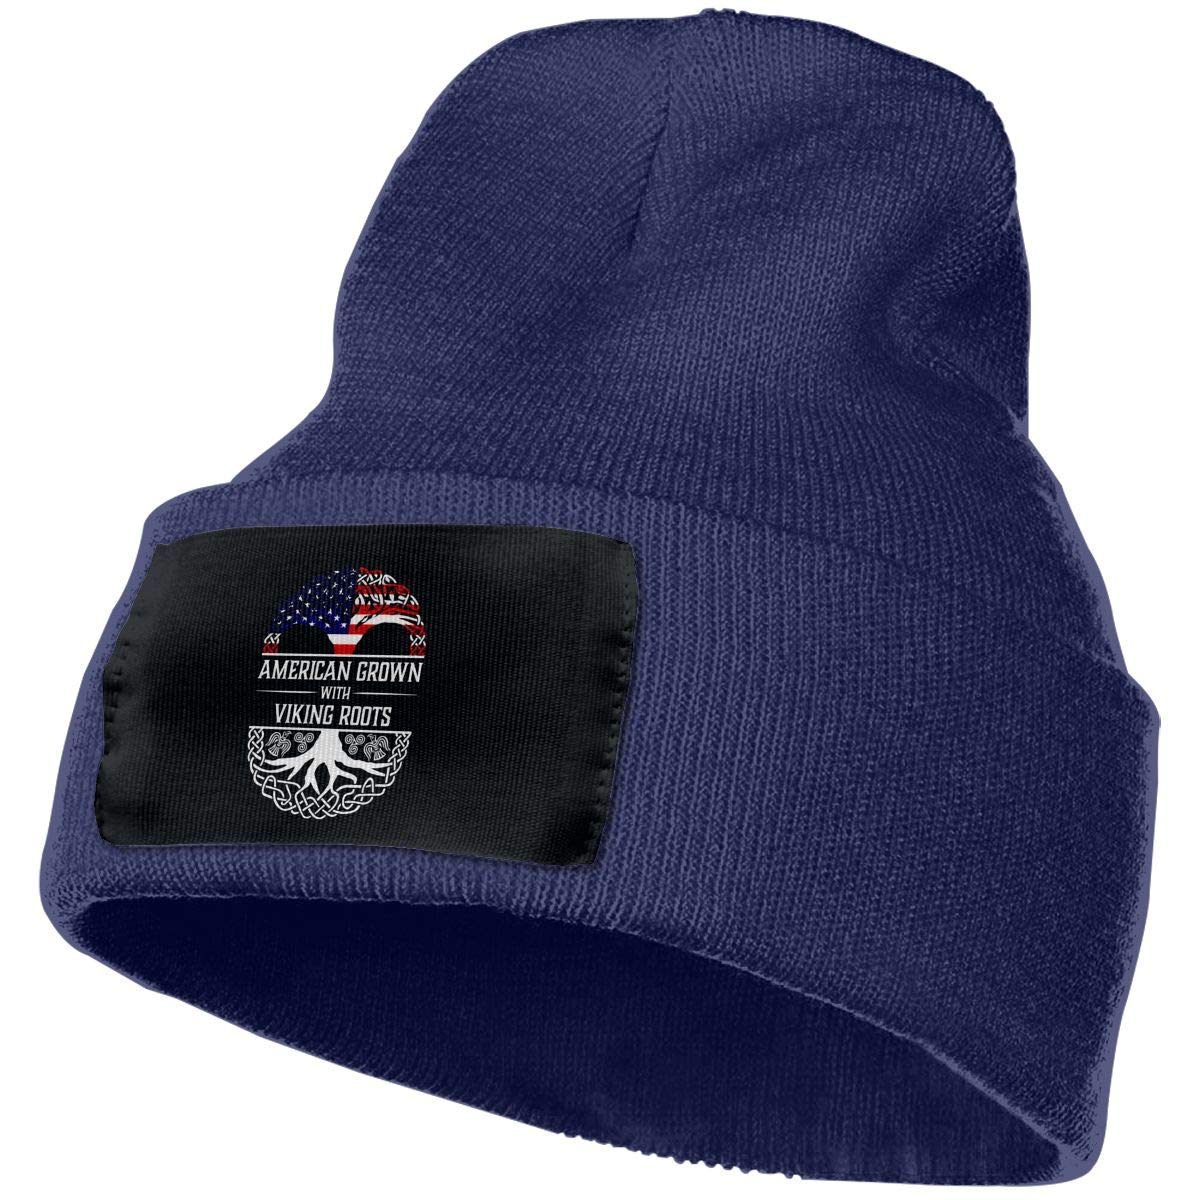 American Grown with Viking Roots Unisex Cap